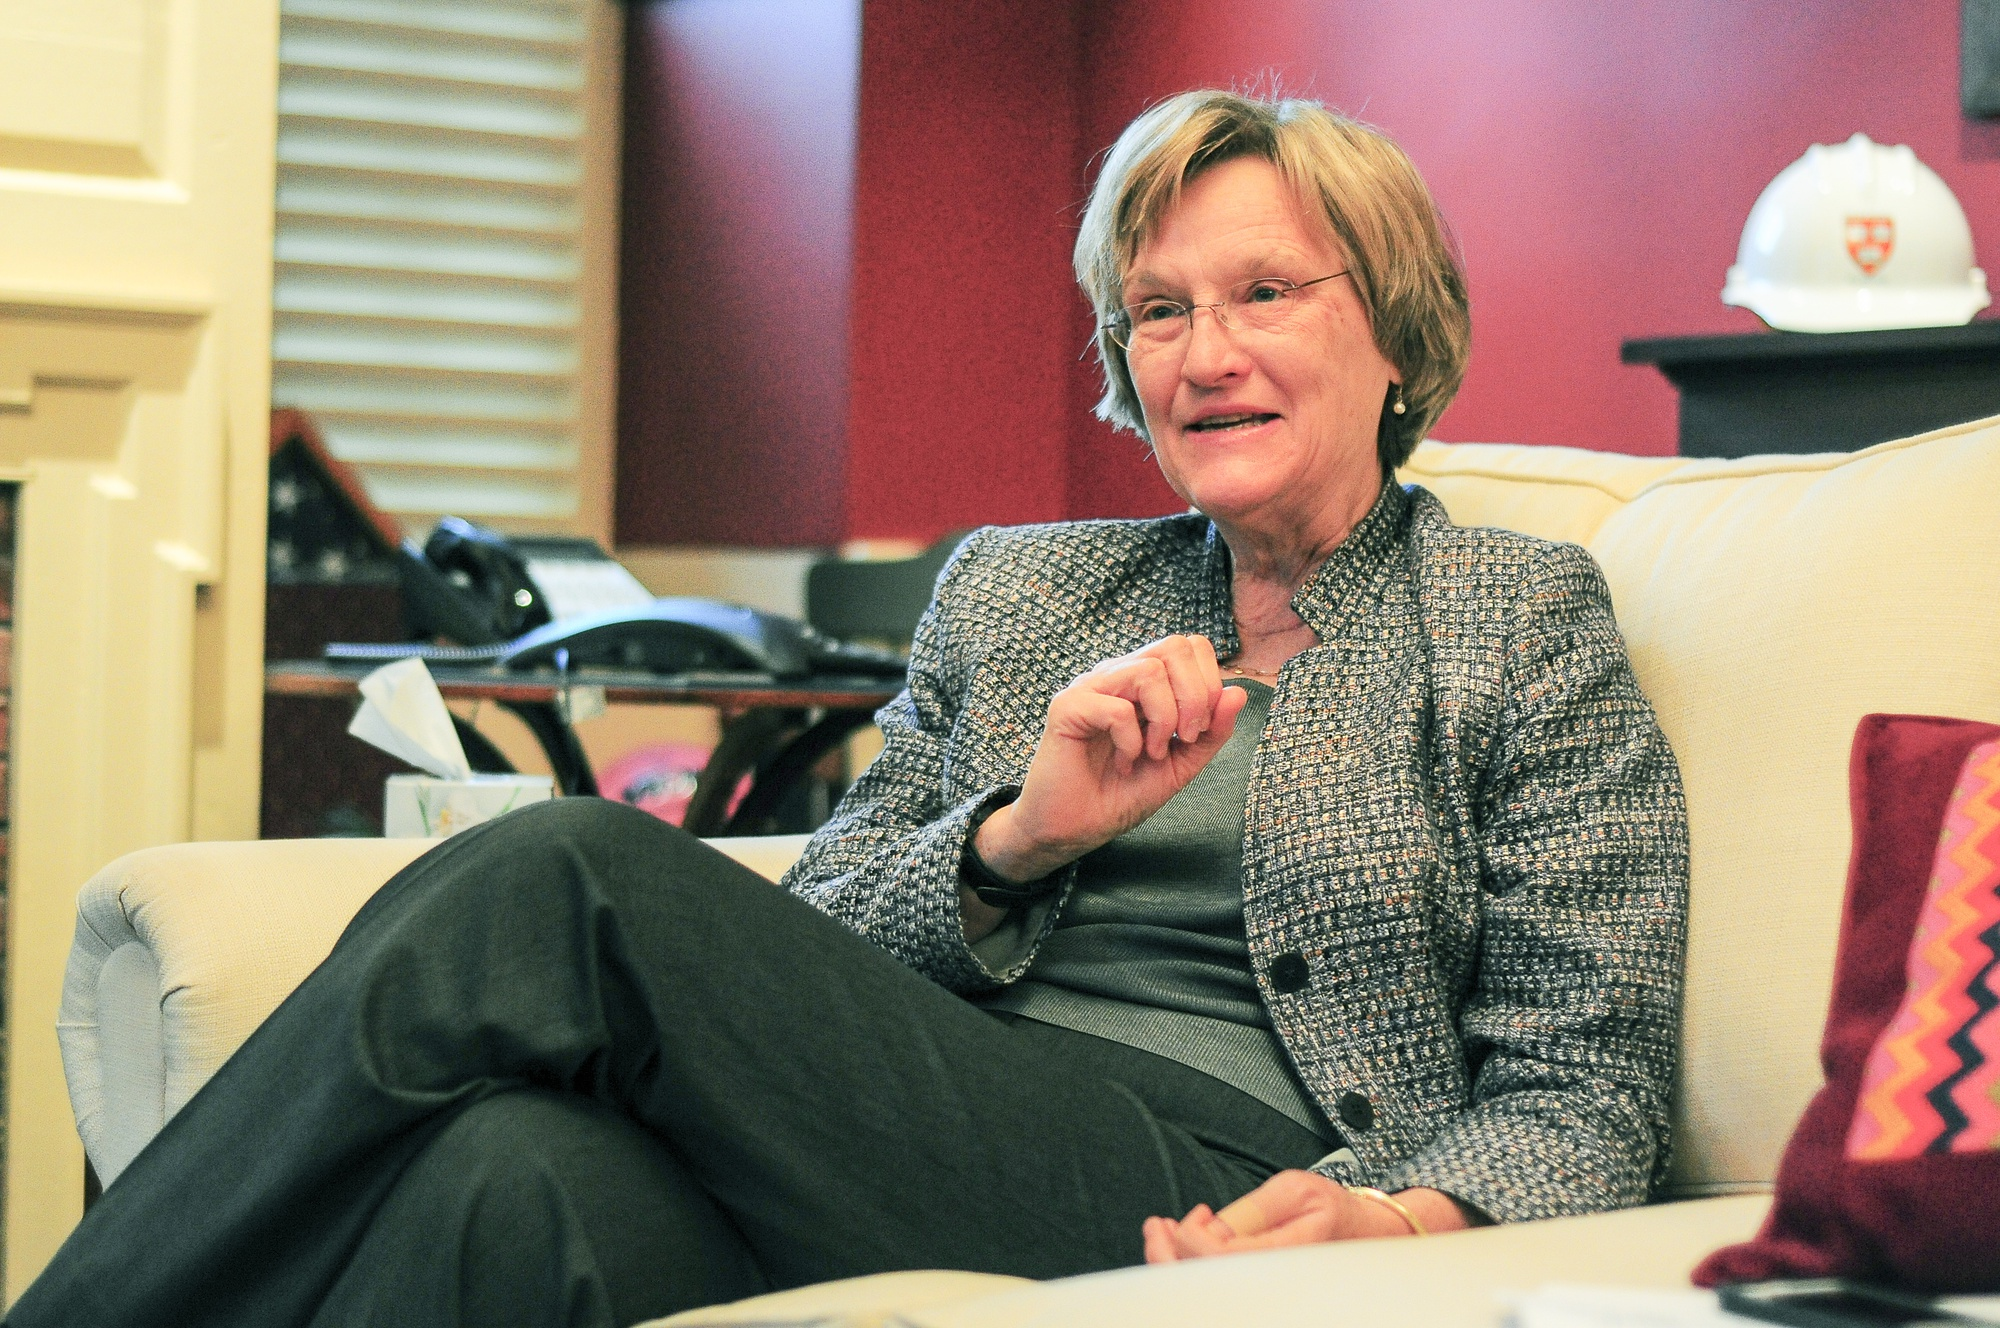 University President Drew G. Faust discussed her role in several hot-button campus issues in her final sit-down interview of 2014 with The Crimson.